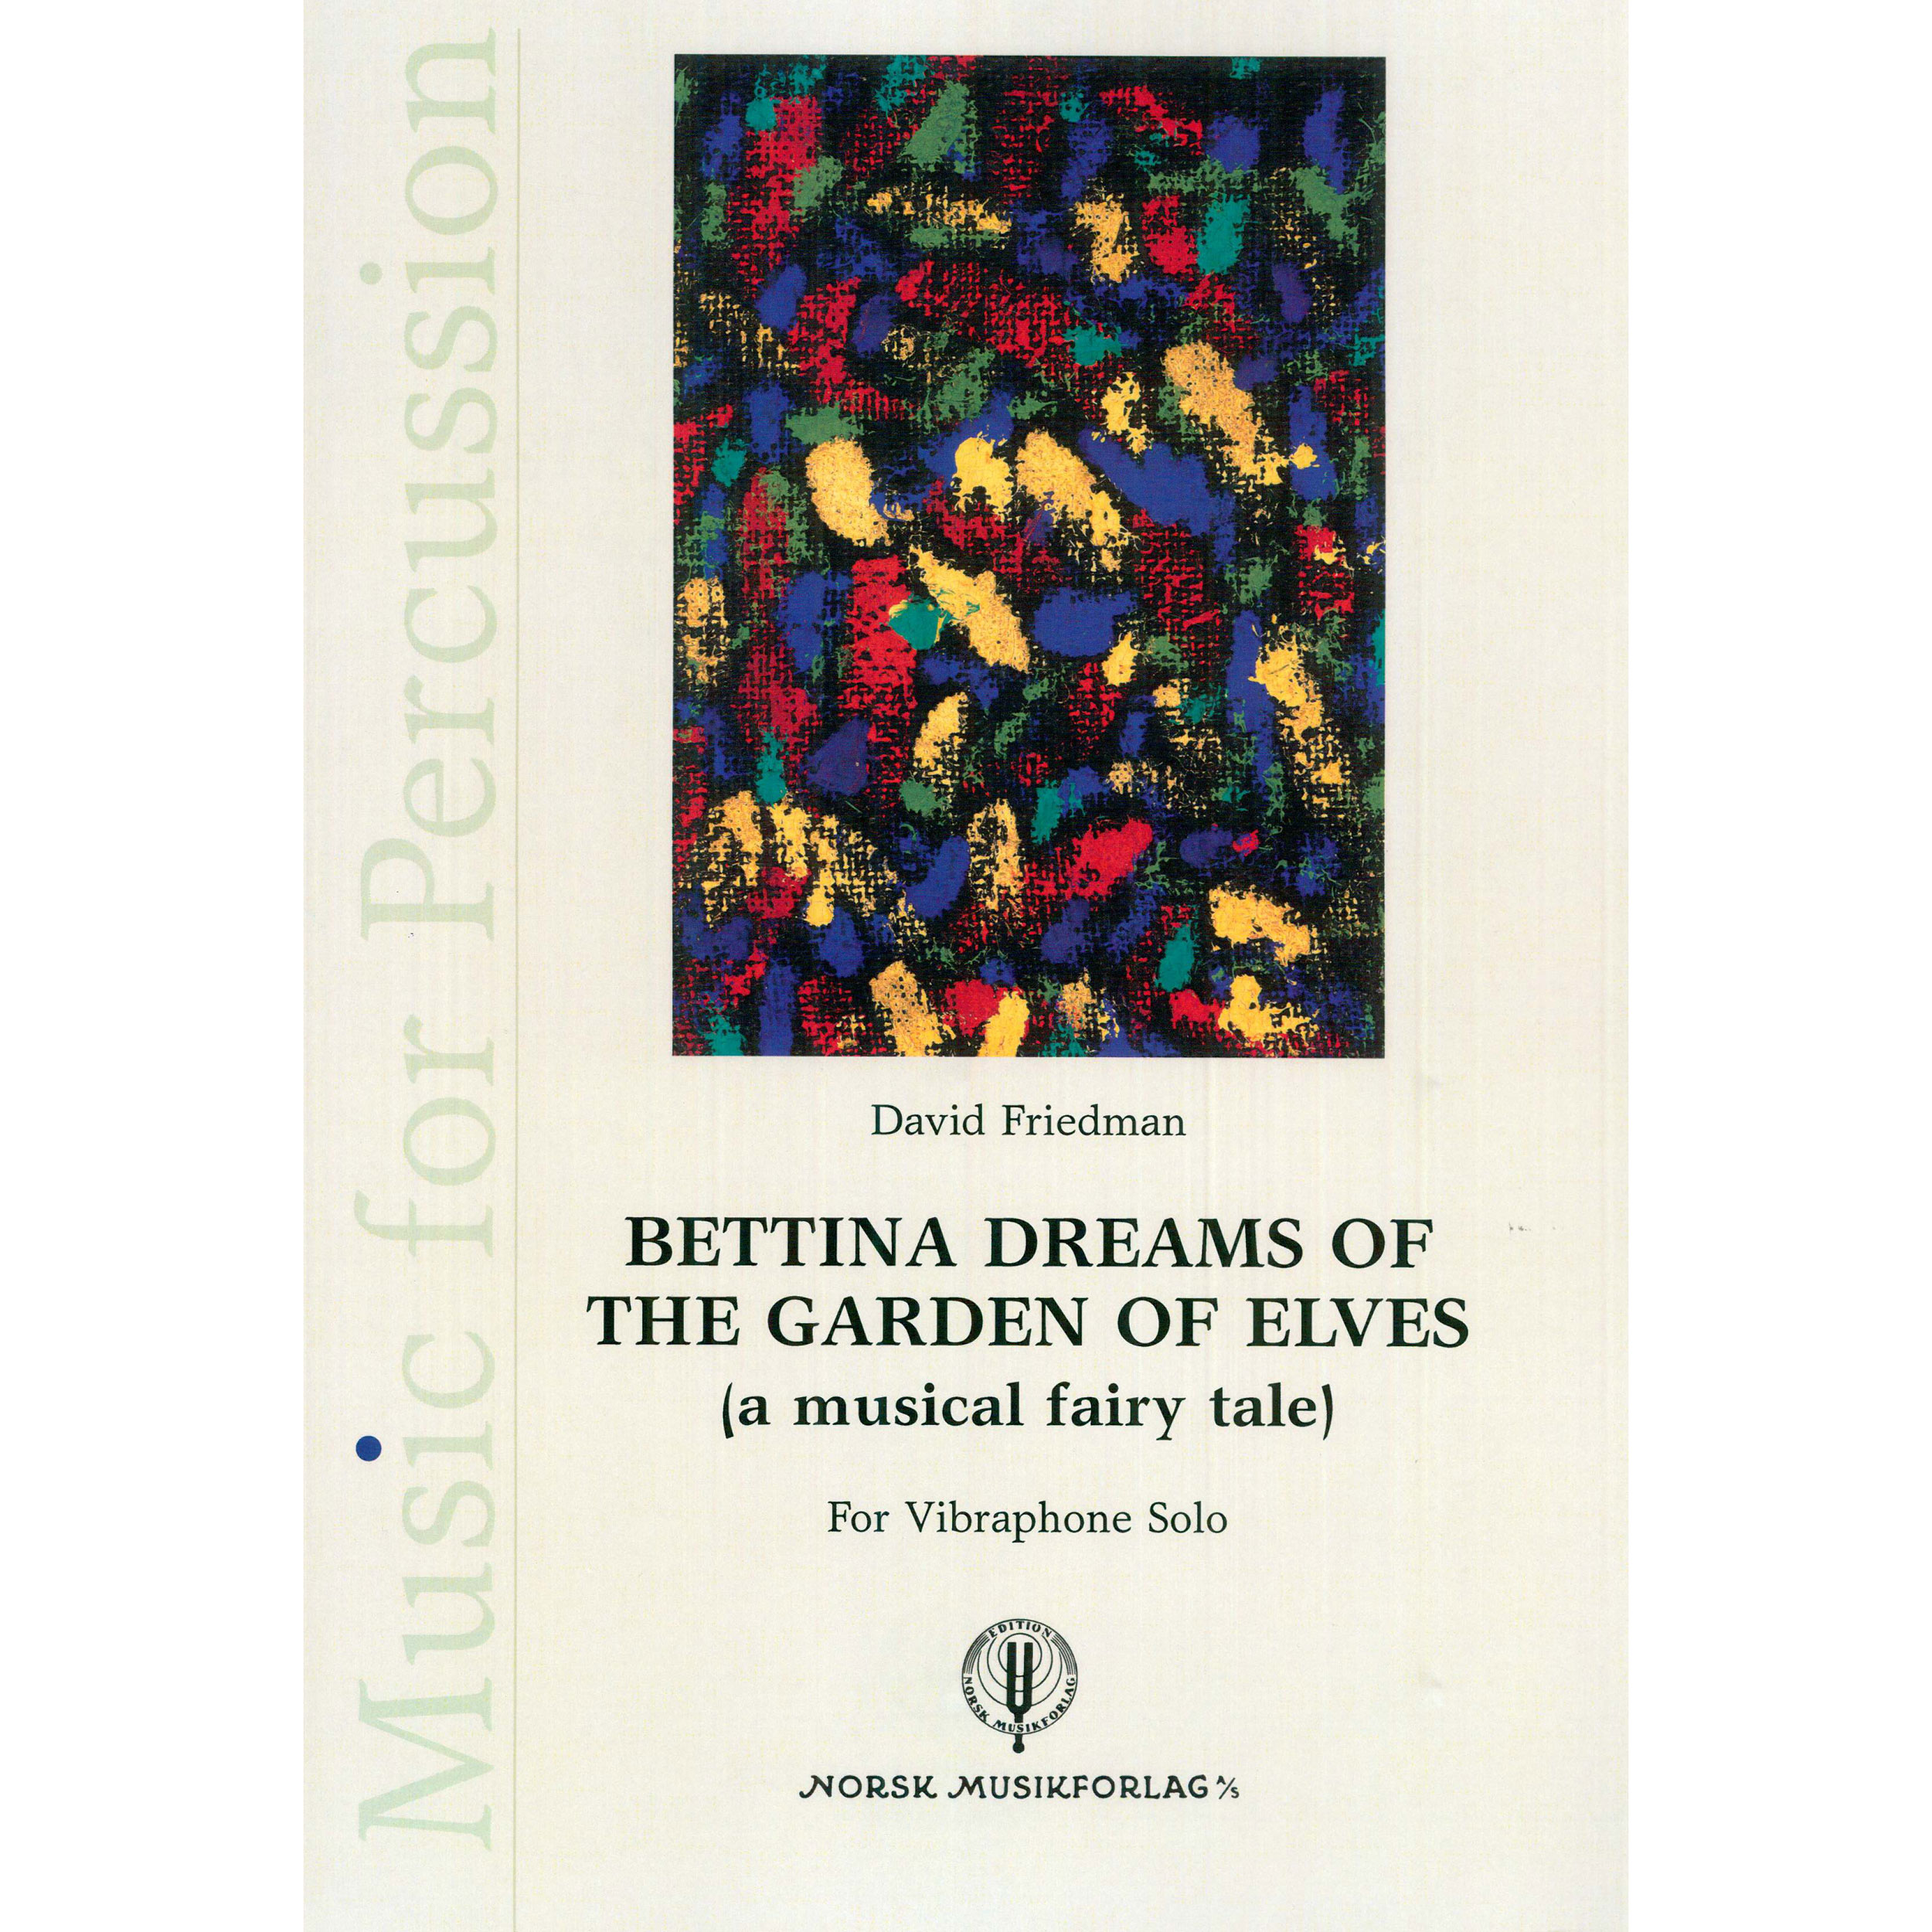 Bettina Dreams of the Garden of Elves by David Friedman